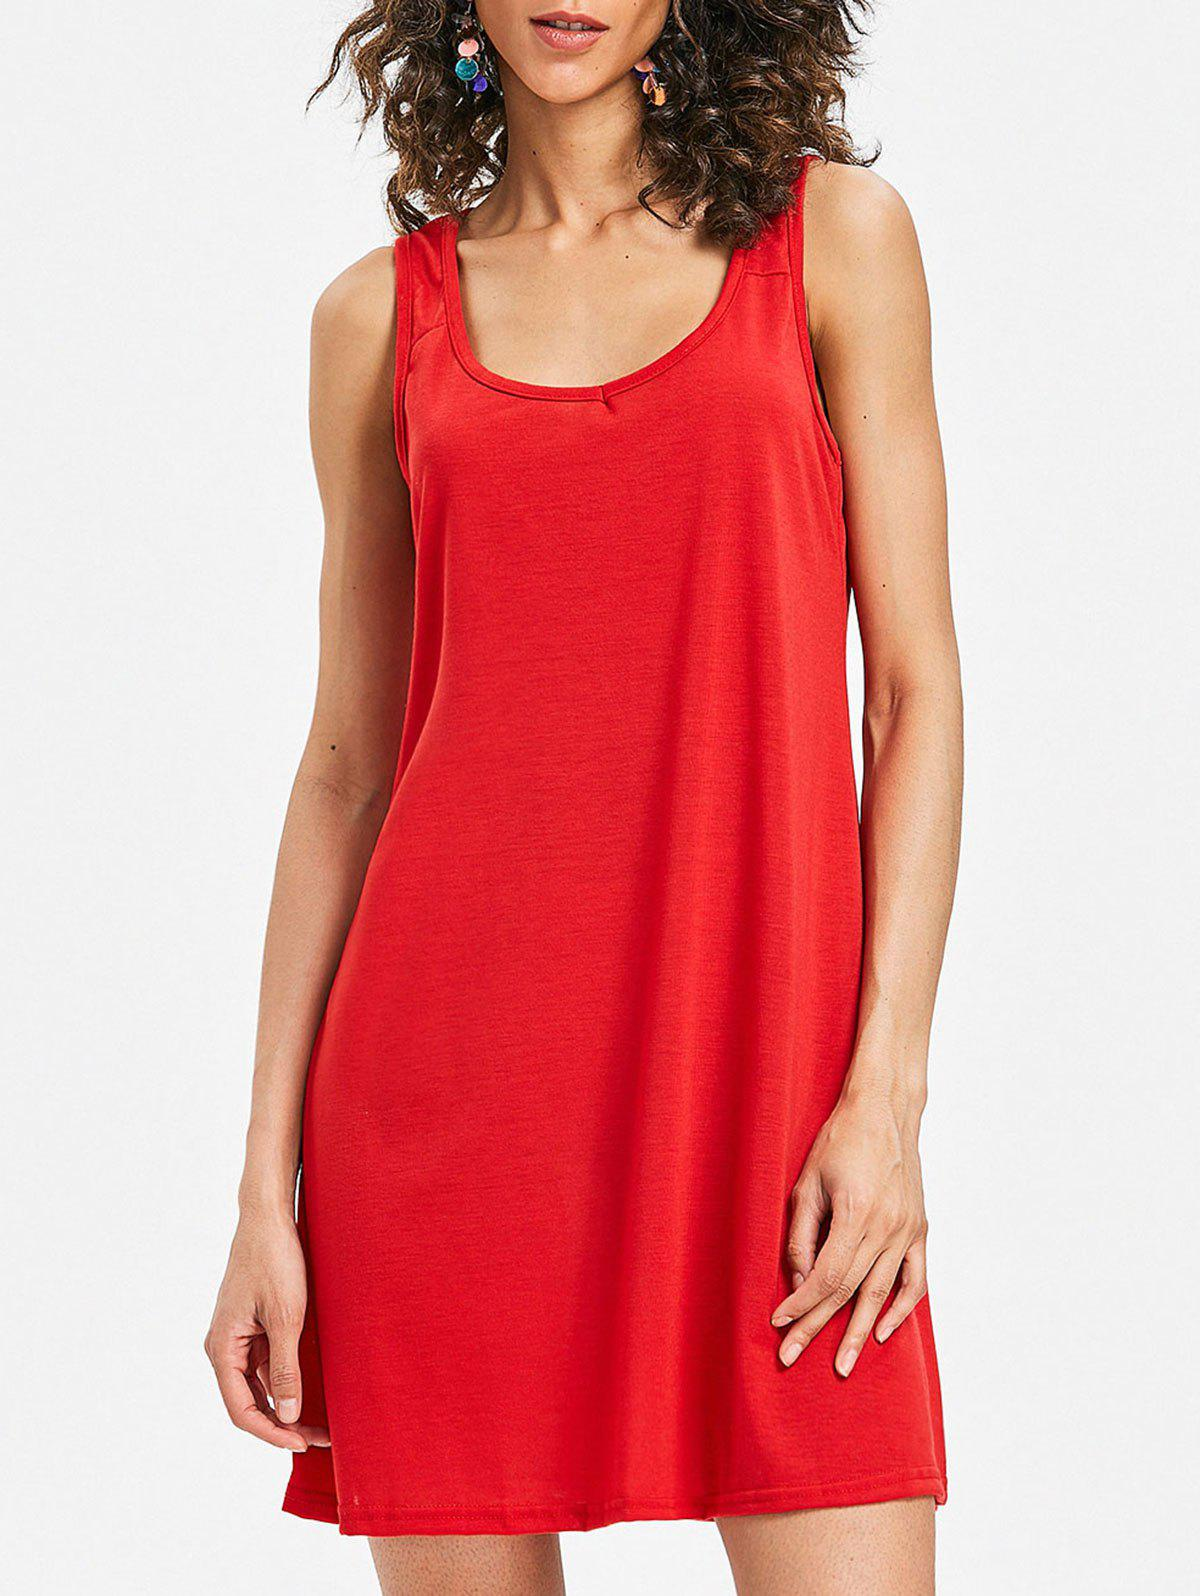 Chic Sleeveless Scoop Neck Shift Dress